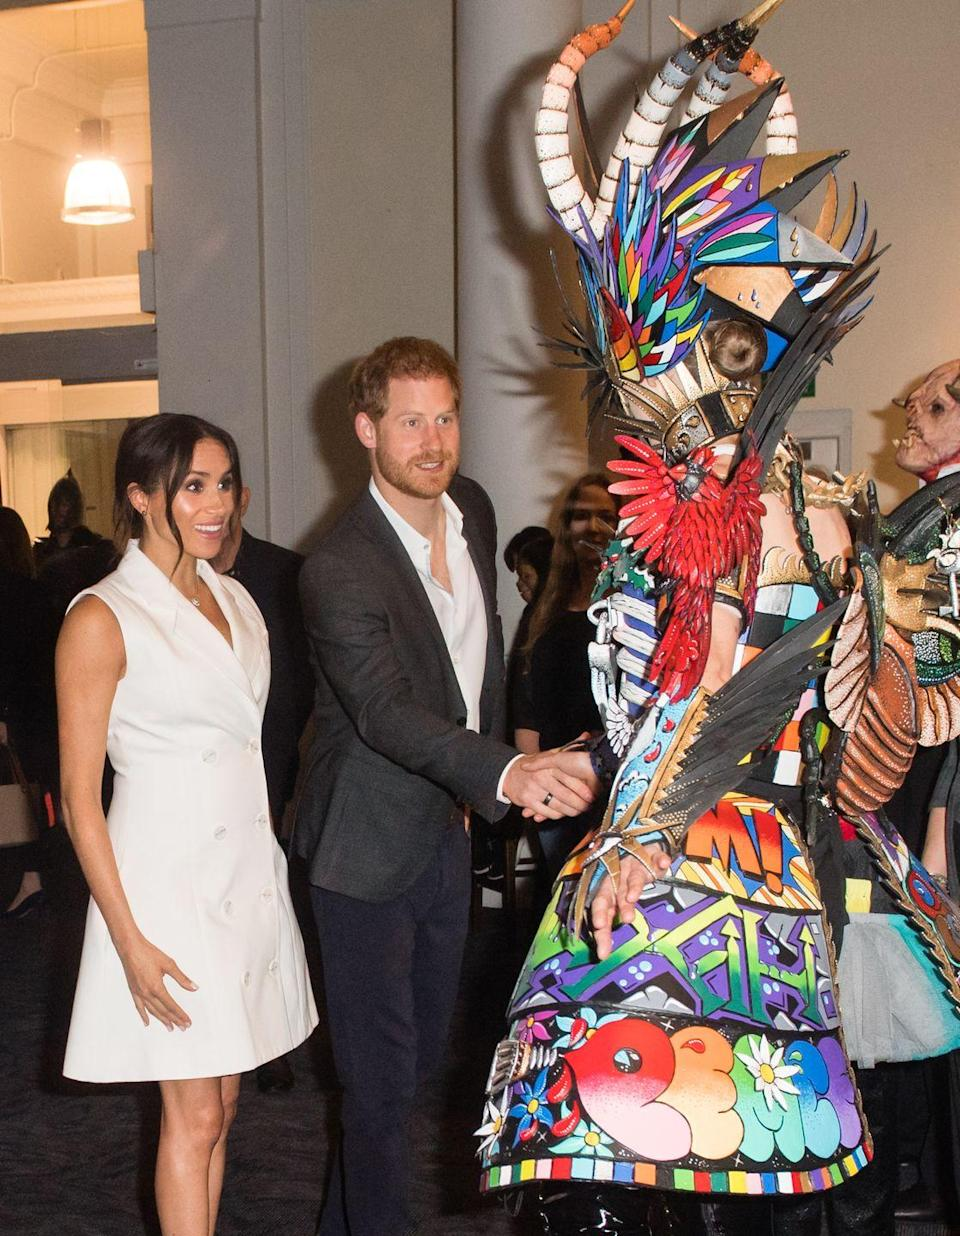 <p>The event at Courtnay Creative was in honor of the city's art scene. </p>